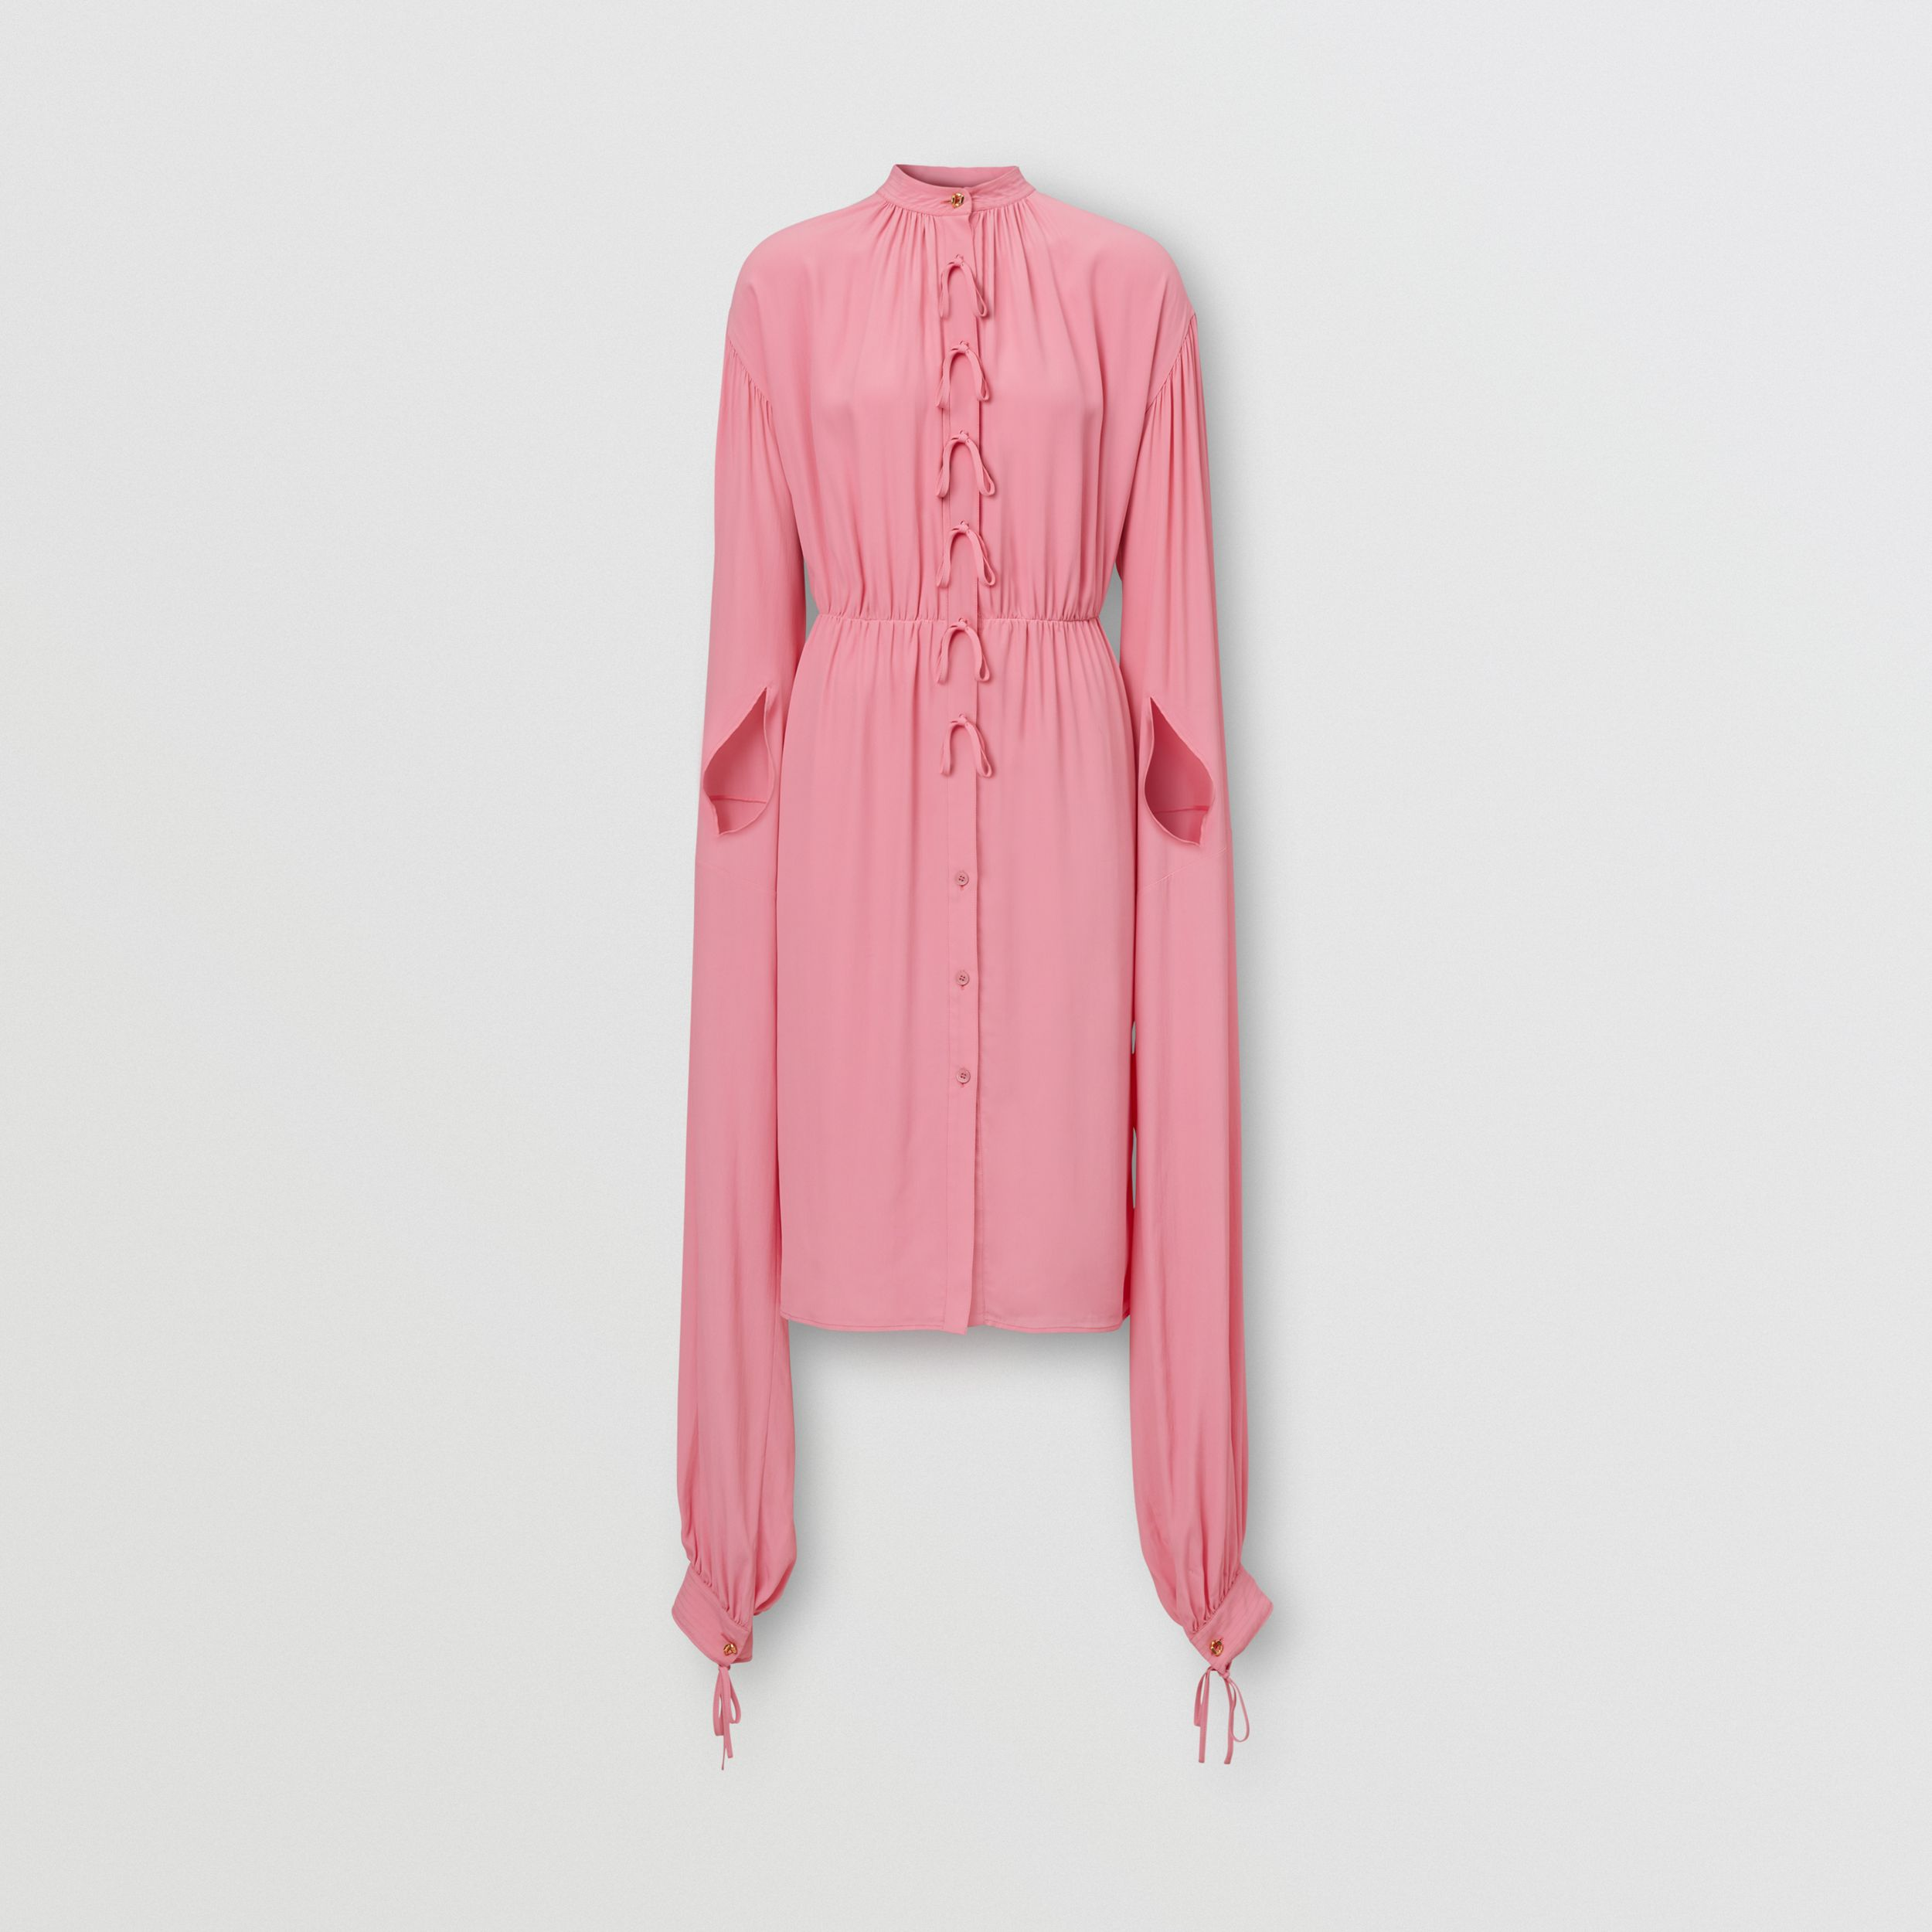 Loop-back Sleeve Silk Crepe De Chine Dress in Bubblegum Pink - Women | Burberry Australia - 4